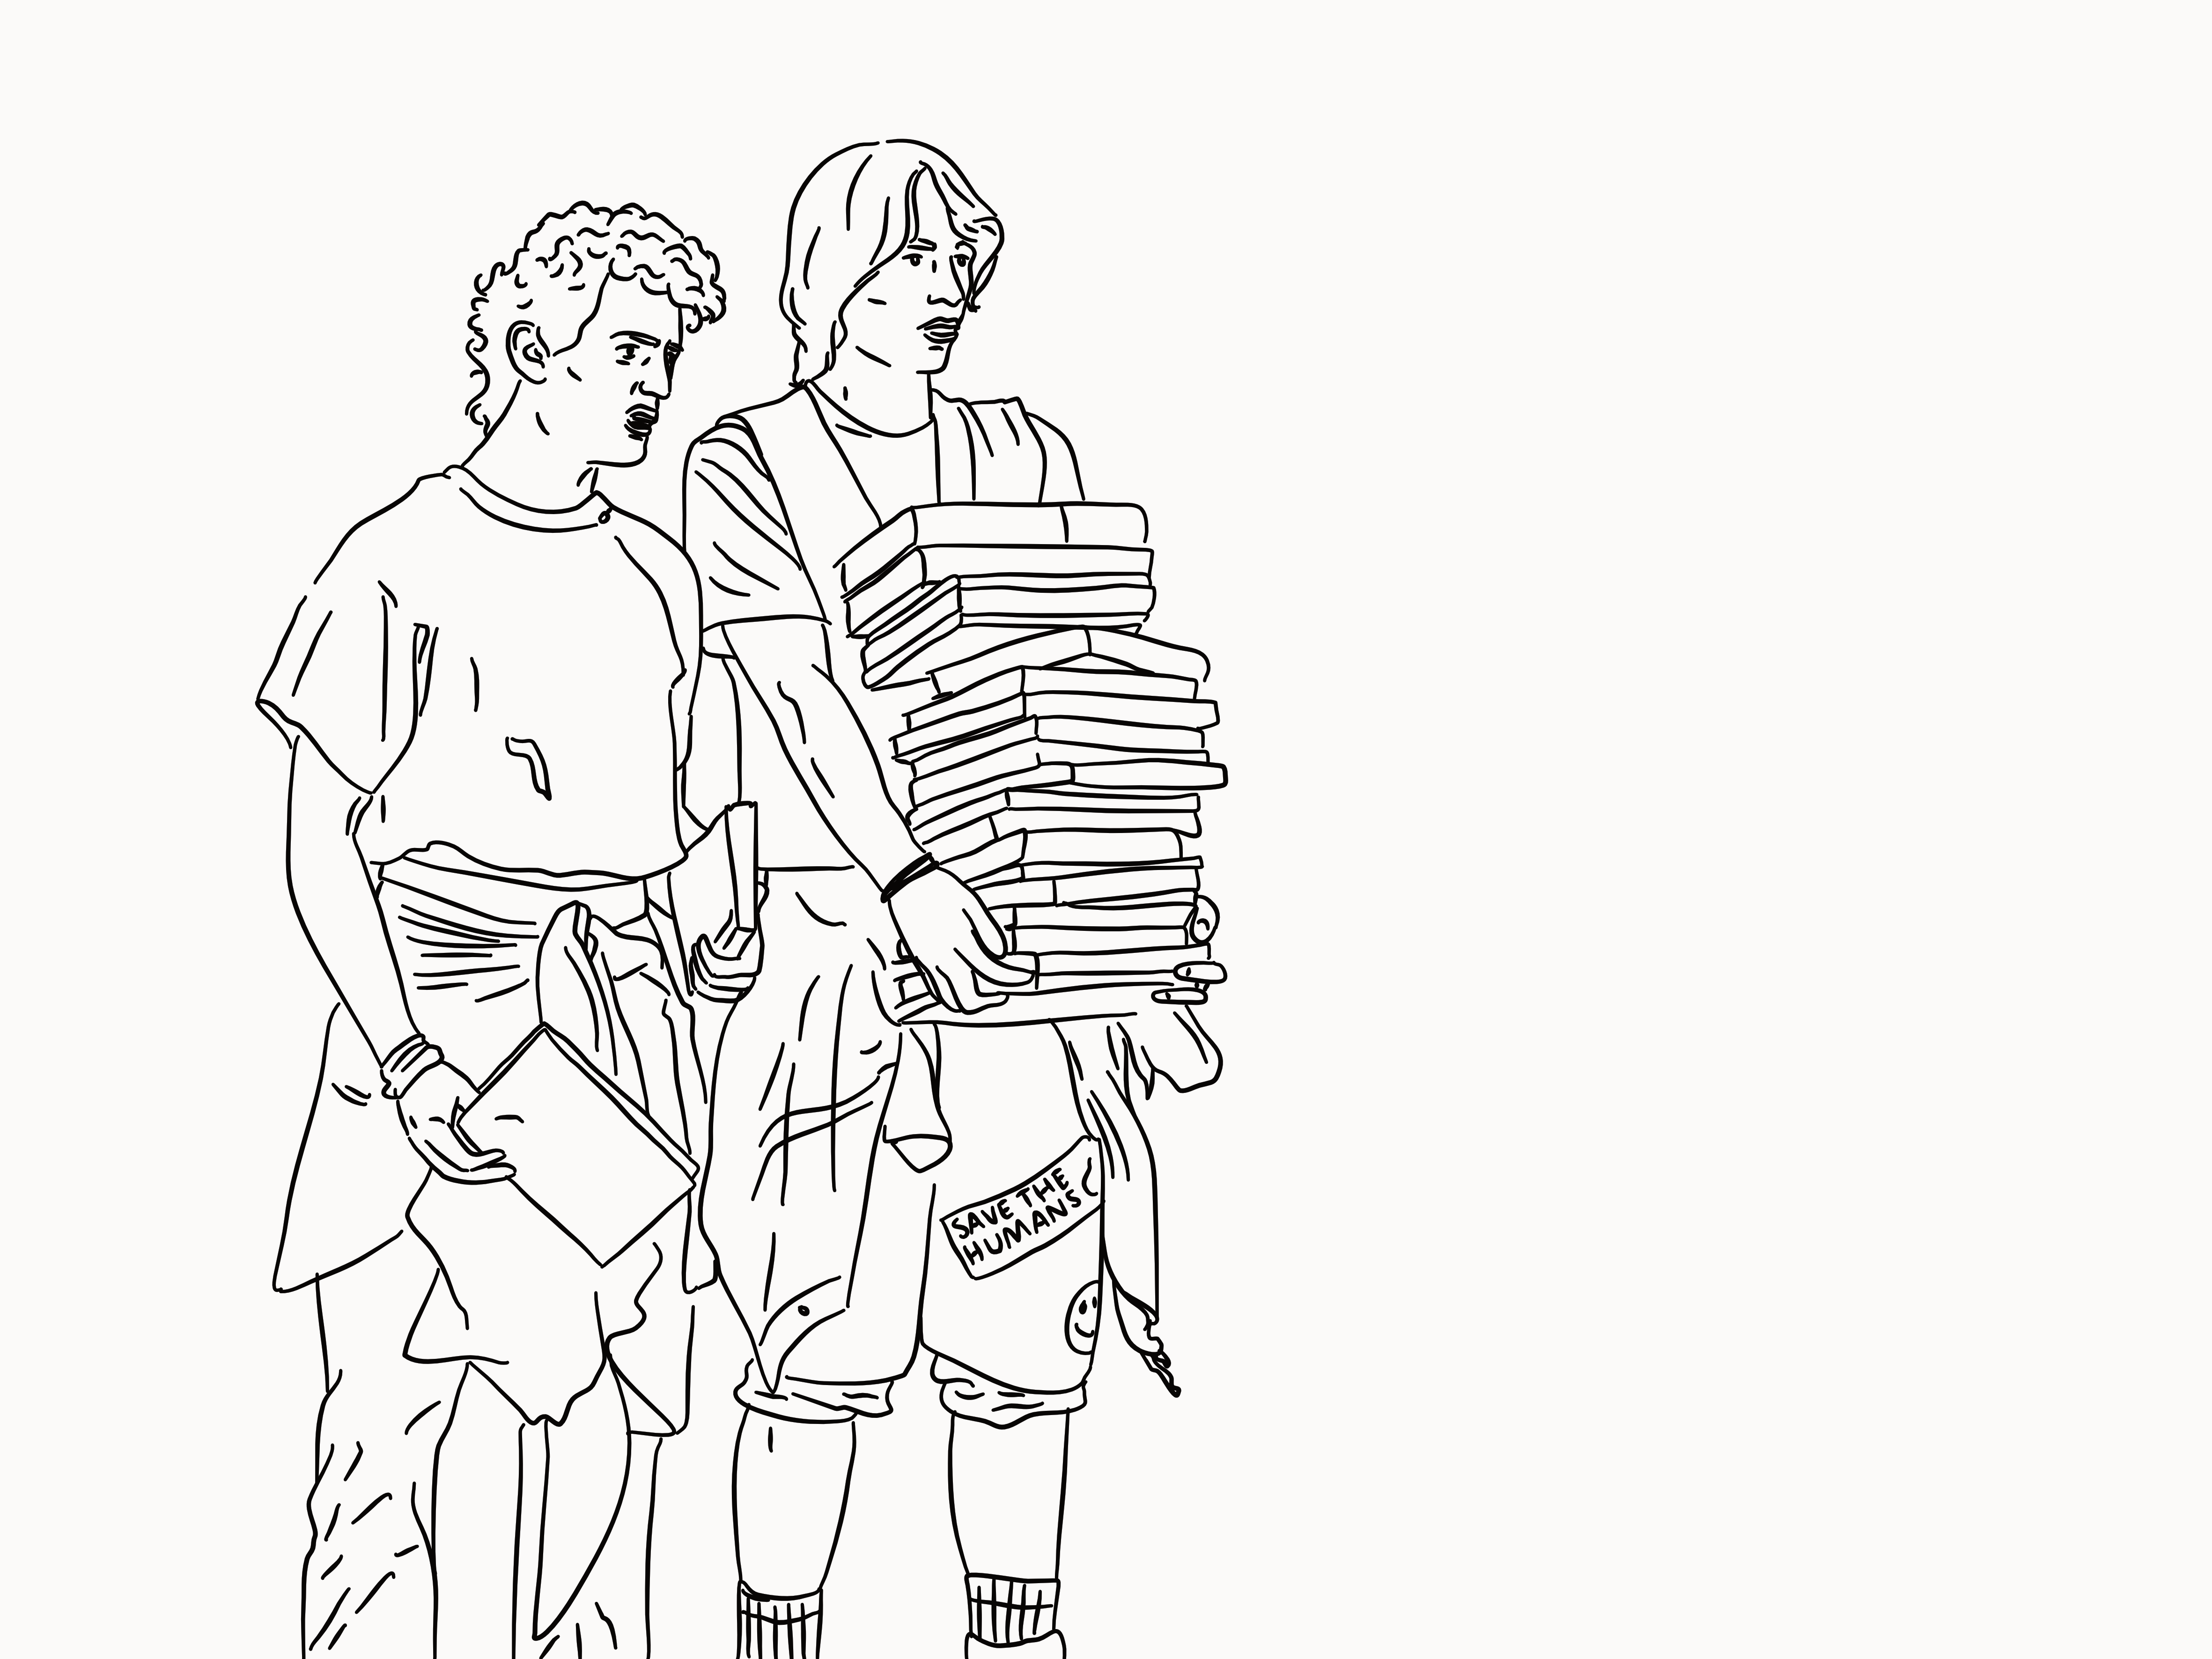 Bill and Ted illustration